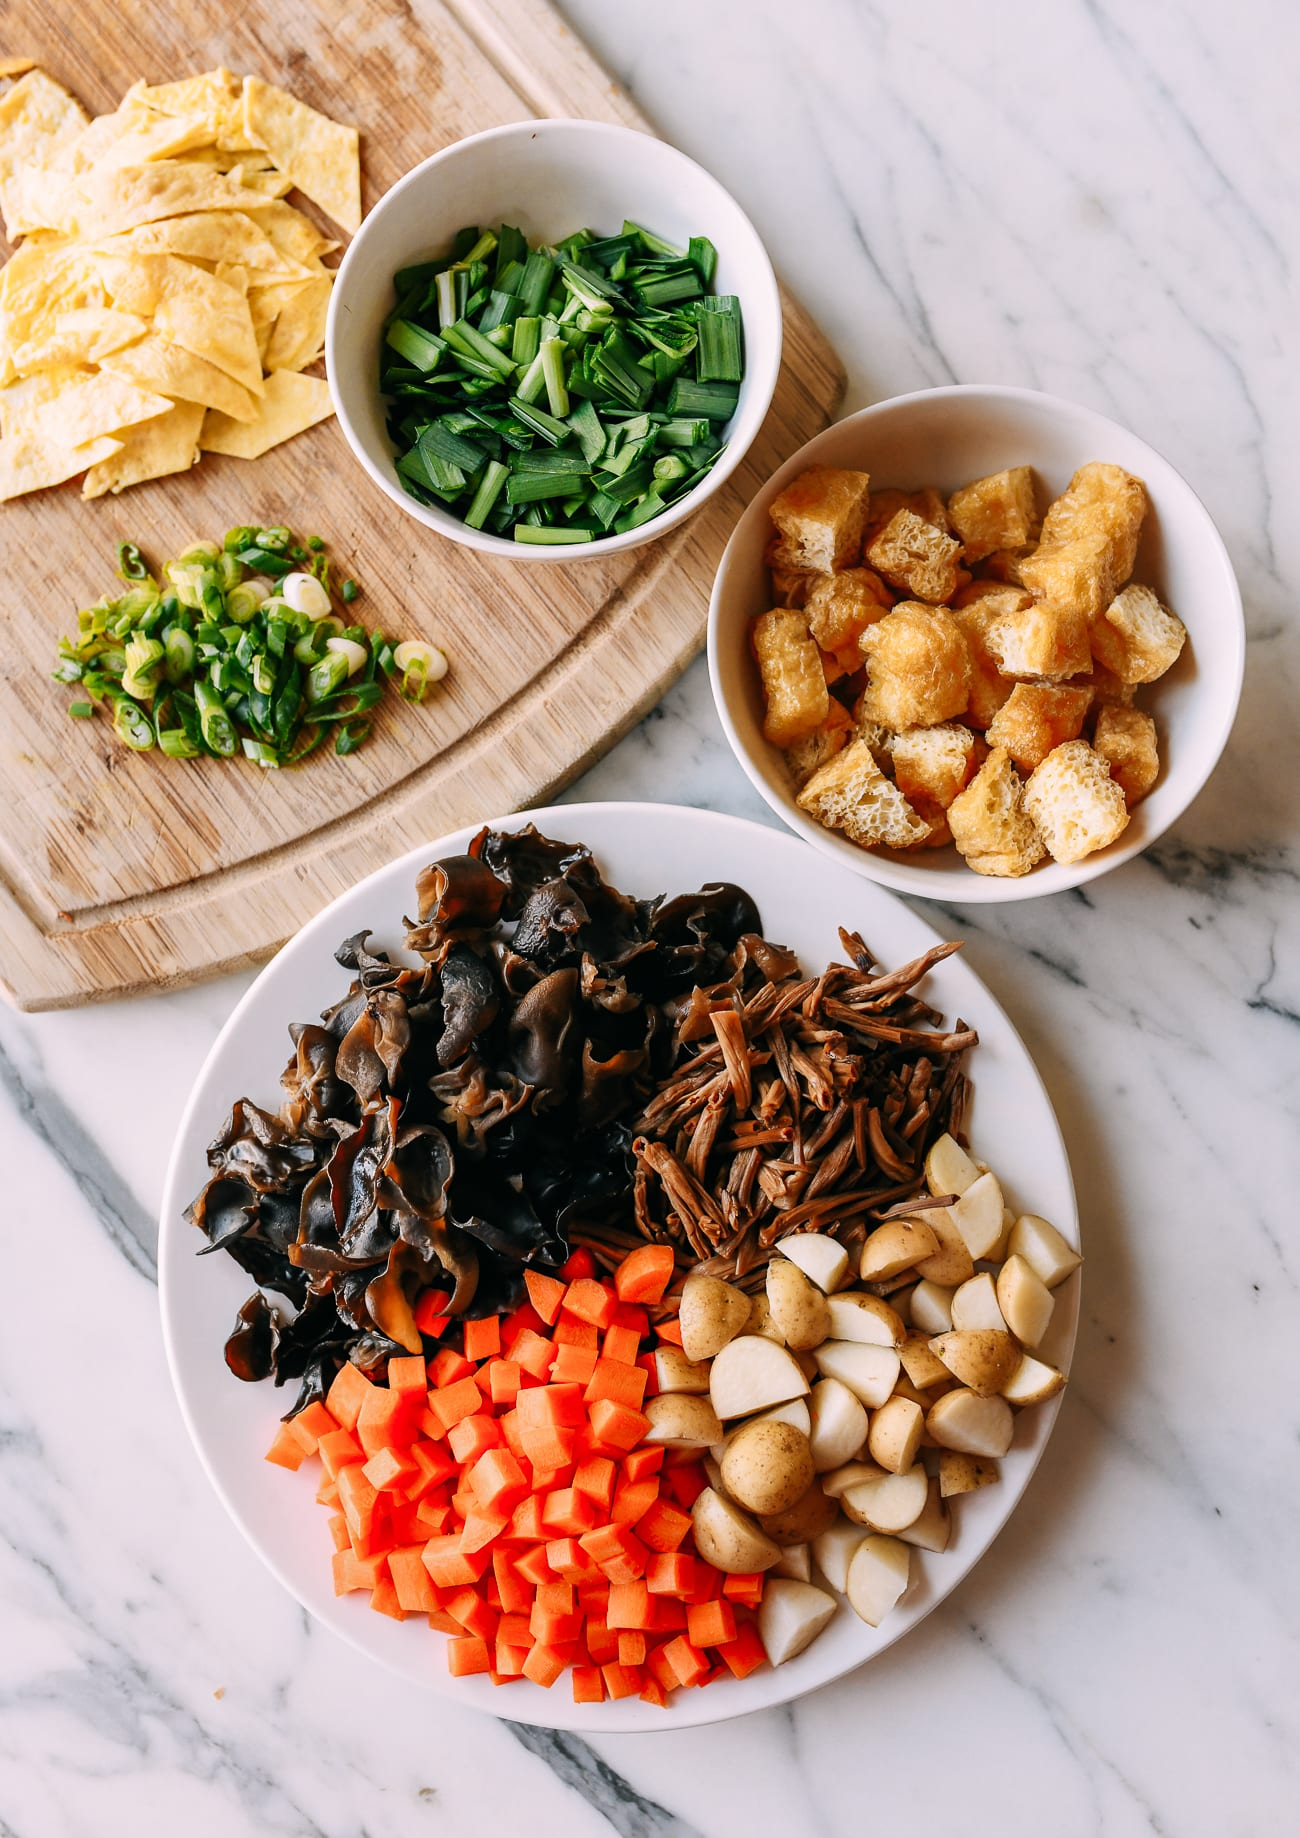 Diced and chopped ingredients for saozi mian